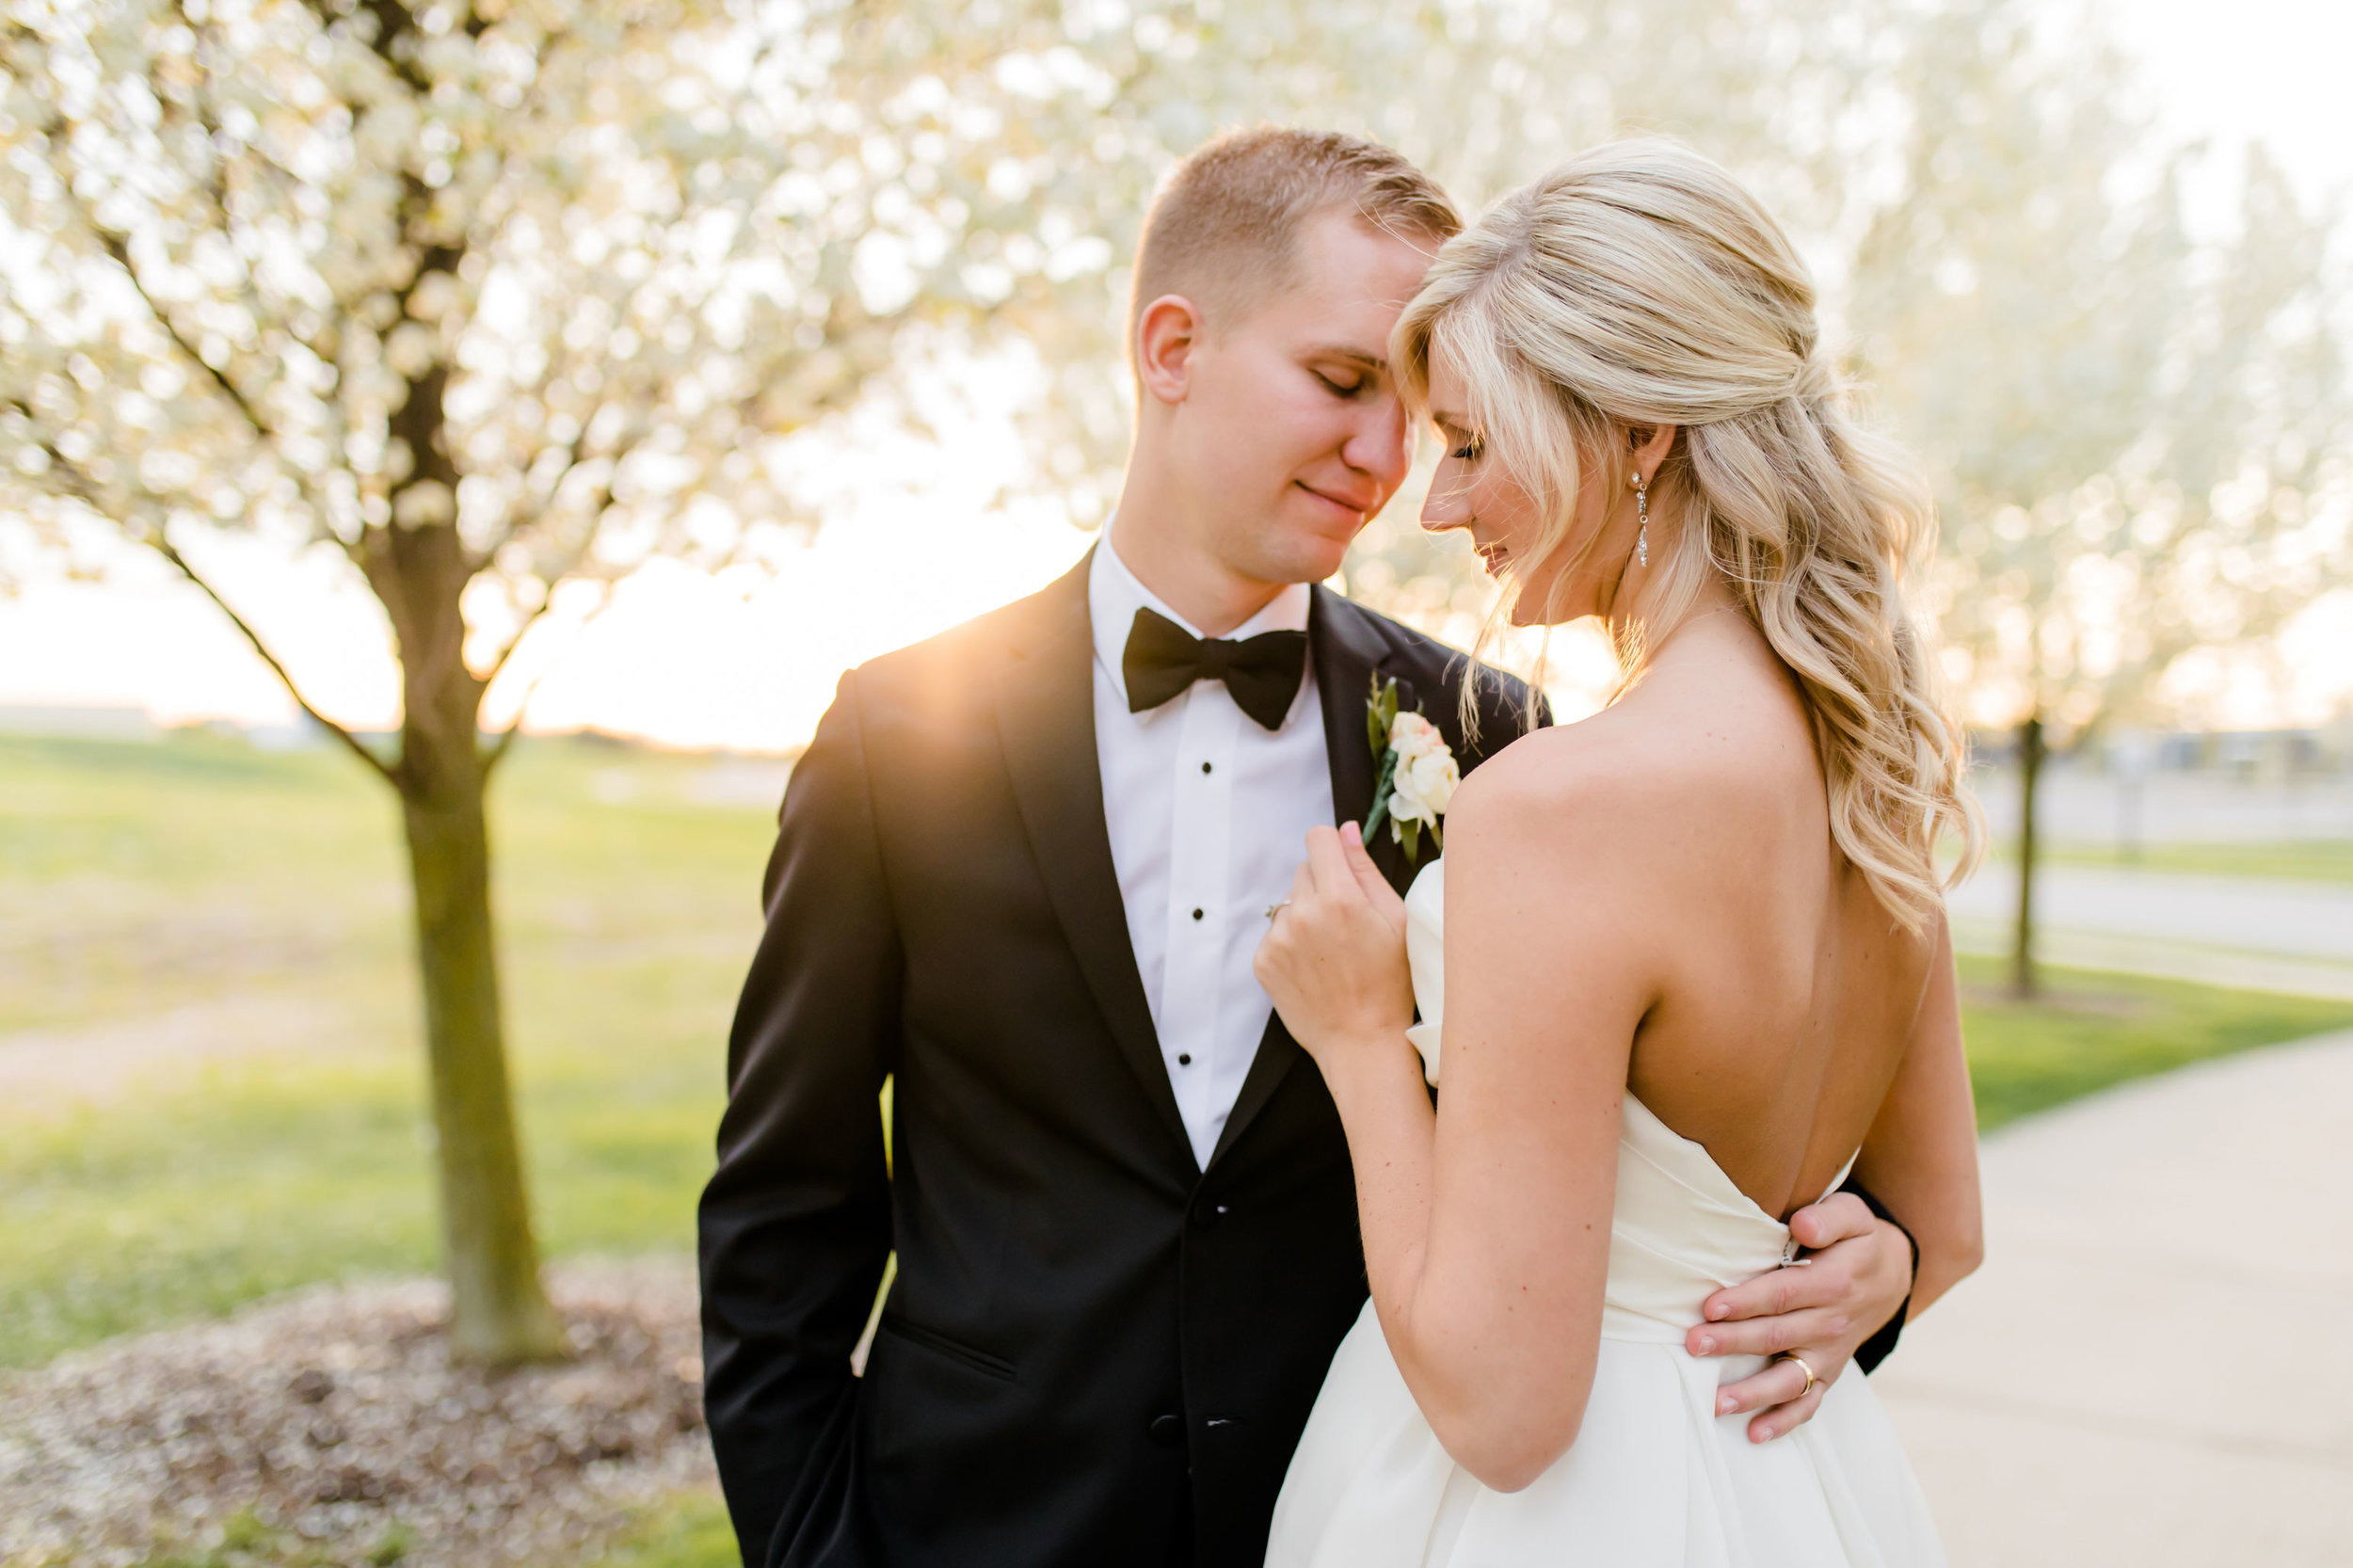 Katie + Stephen - This couple did not miss a detail from the bride's stunning Lazaro wedding gown, to their gorgeous blooms, to the groom's cake all captured by Viridian Ivy Images.